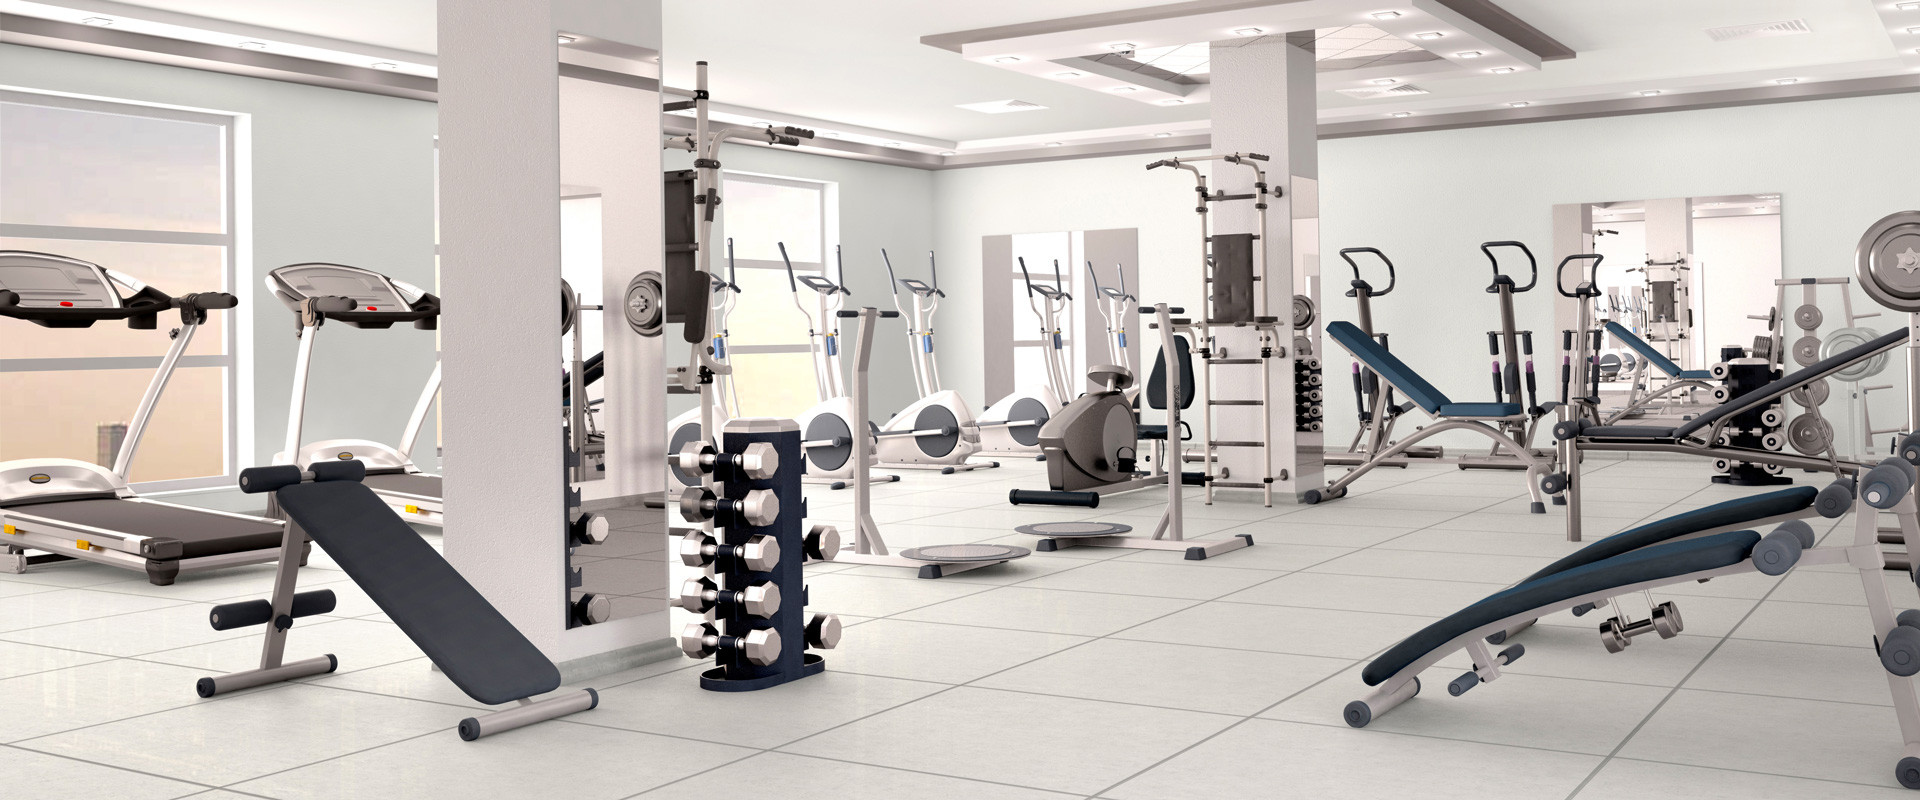 Fitness Centre Cleaning